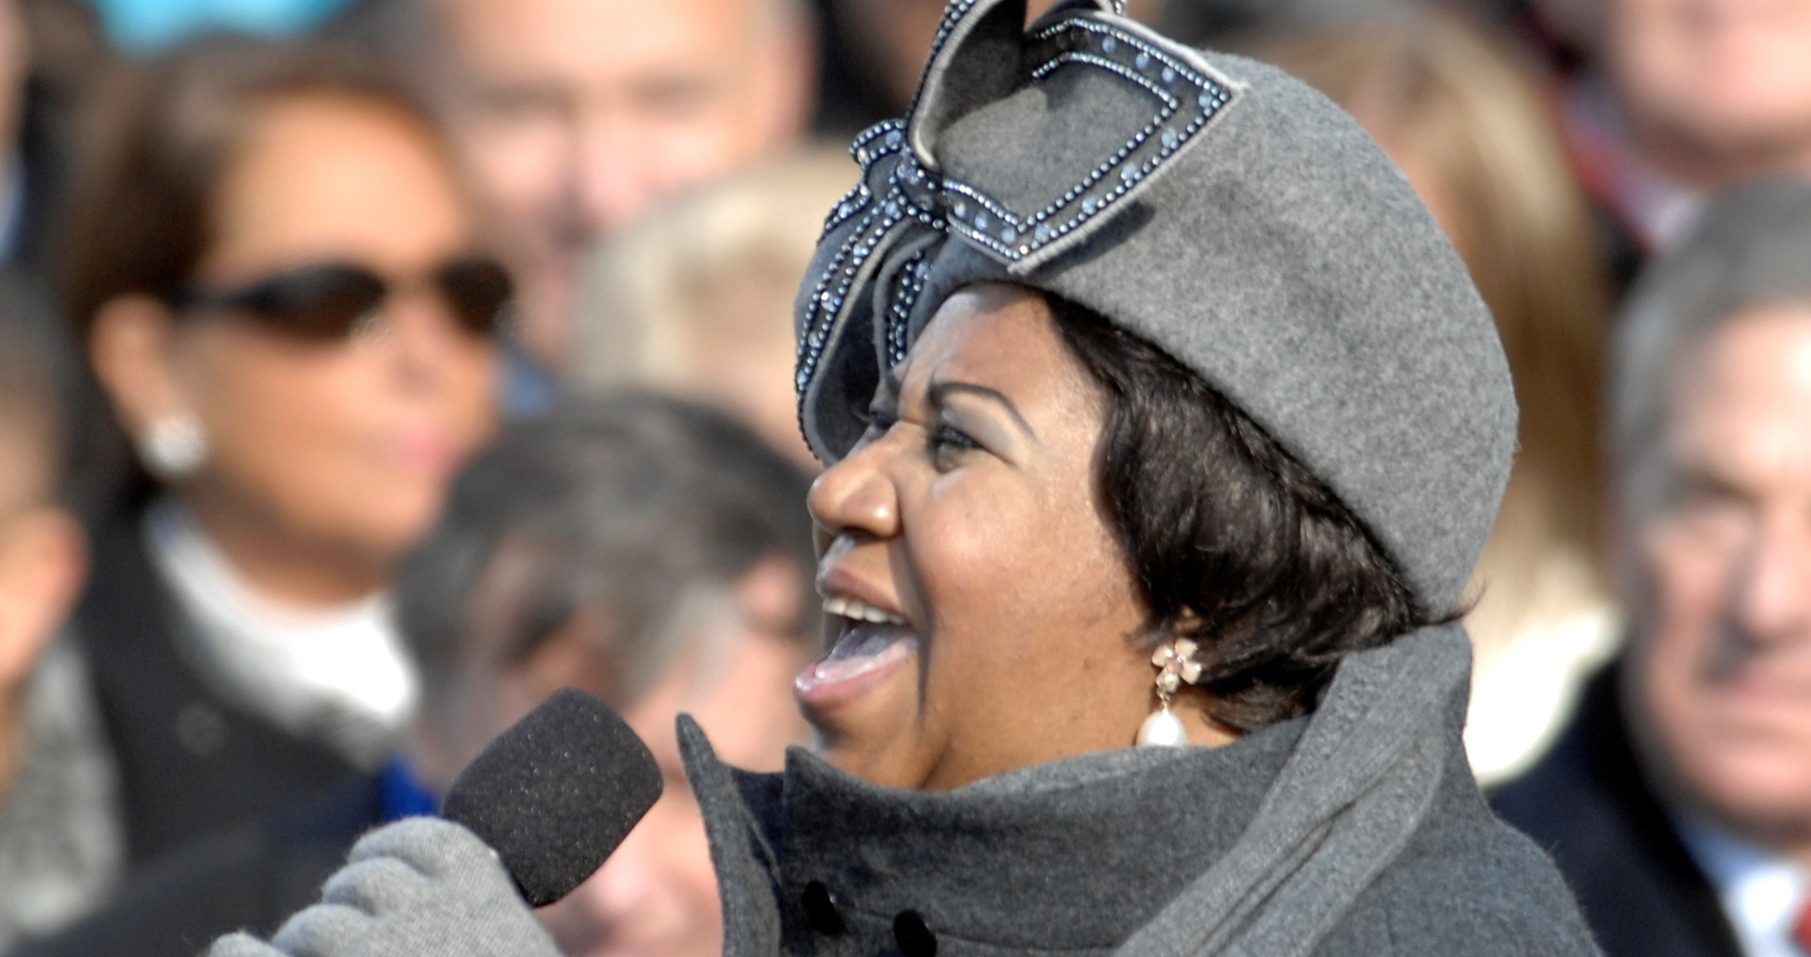 FACT CHECK: Did Aretha Franklin 'Work for' Donald Trump on Numerous Occasions?